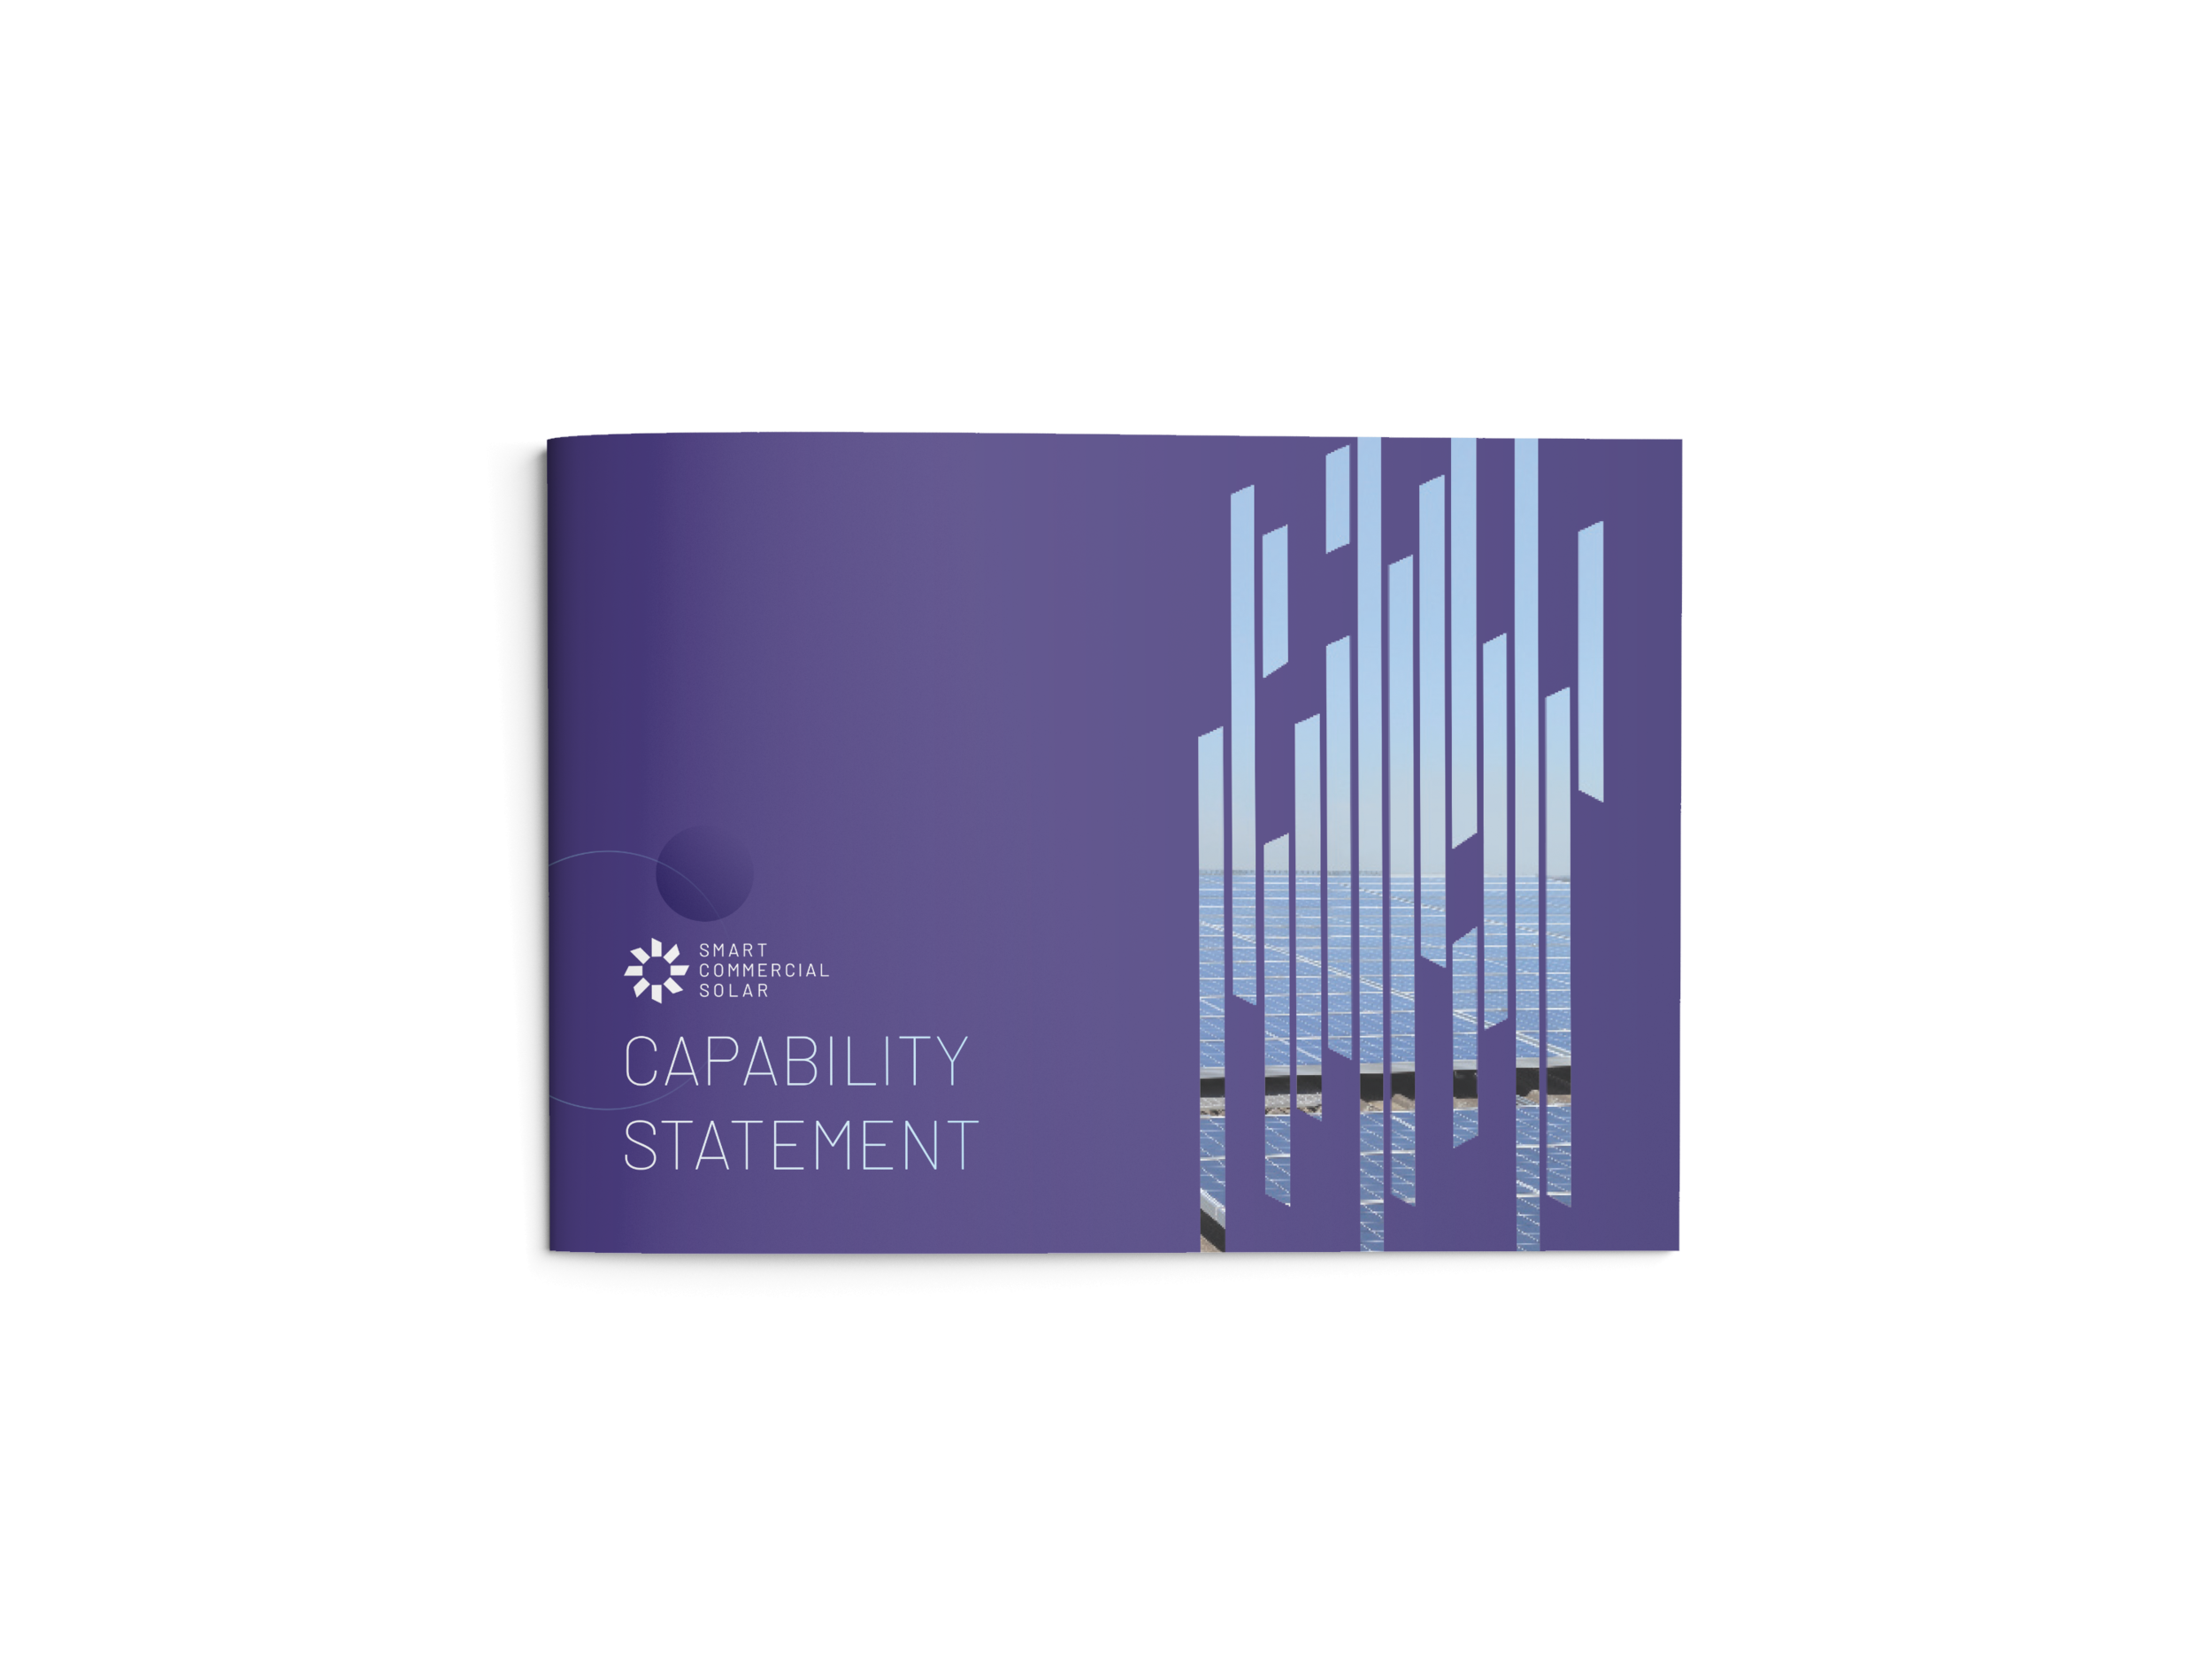 Capability_booklet_mockup_TRANSPARENT.png